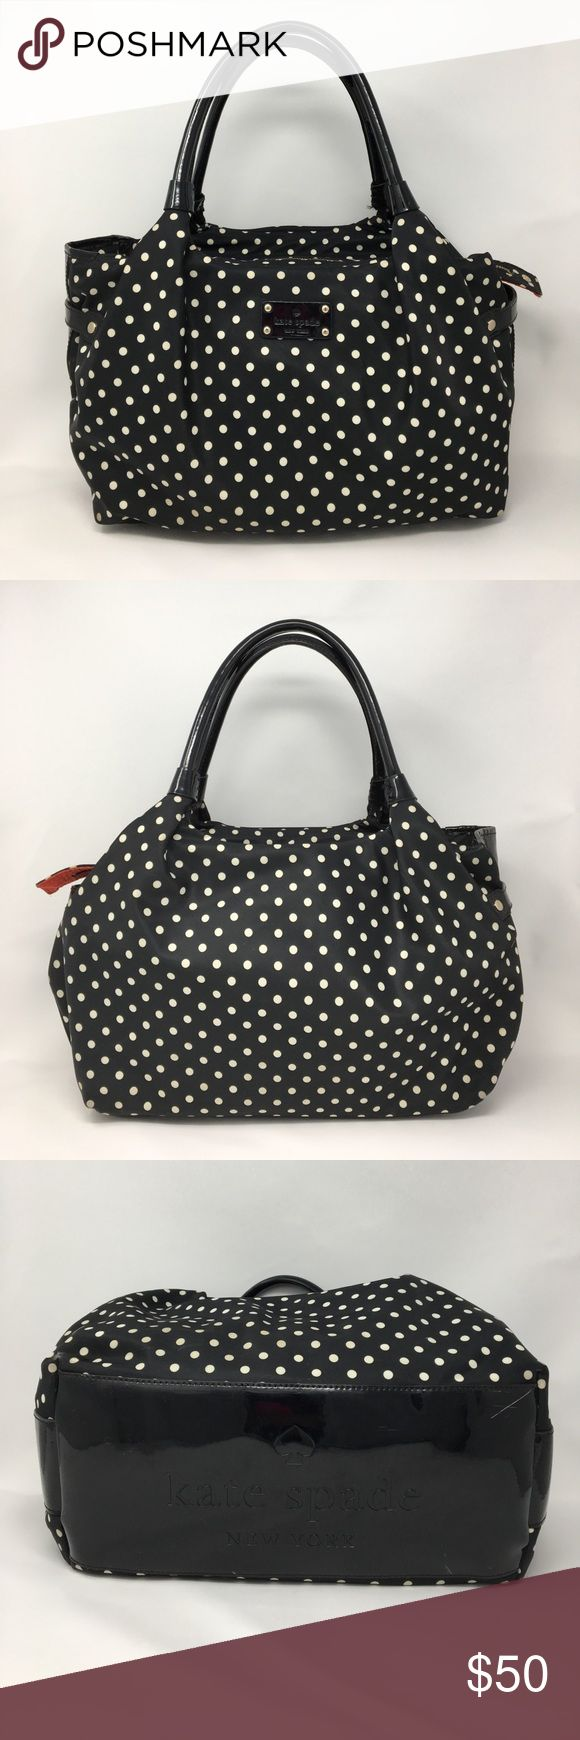 Kate Spade Nylon Polka Dot Tote Bag Kate Spade Nylon Polka Dot Tote Bag. Size 13x5.5x10 inches. Black with White Polka Dots. Red lining. Zipper closure. Inside zip pocket and on the other side two open pockets. Used condition. Minimal wear. Still in very good condition. NO TRADES! kate spade Bags Totes